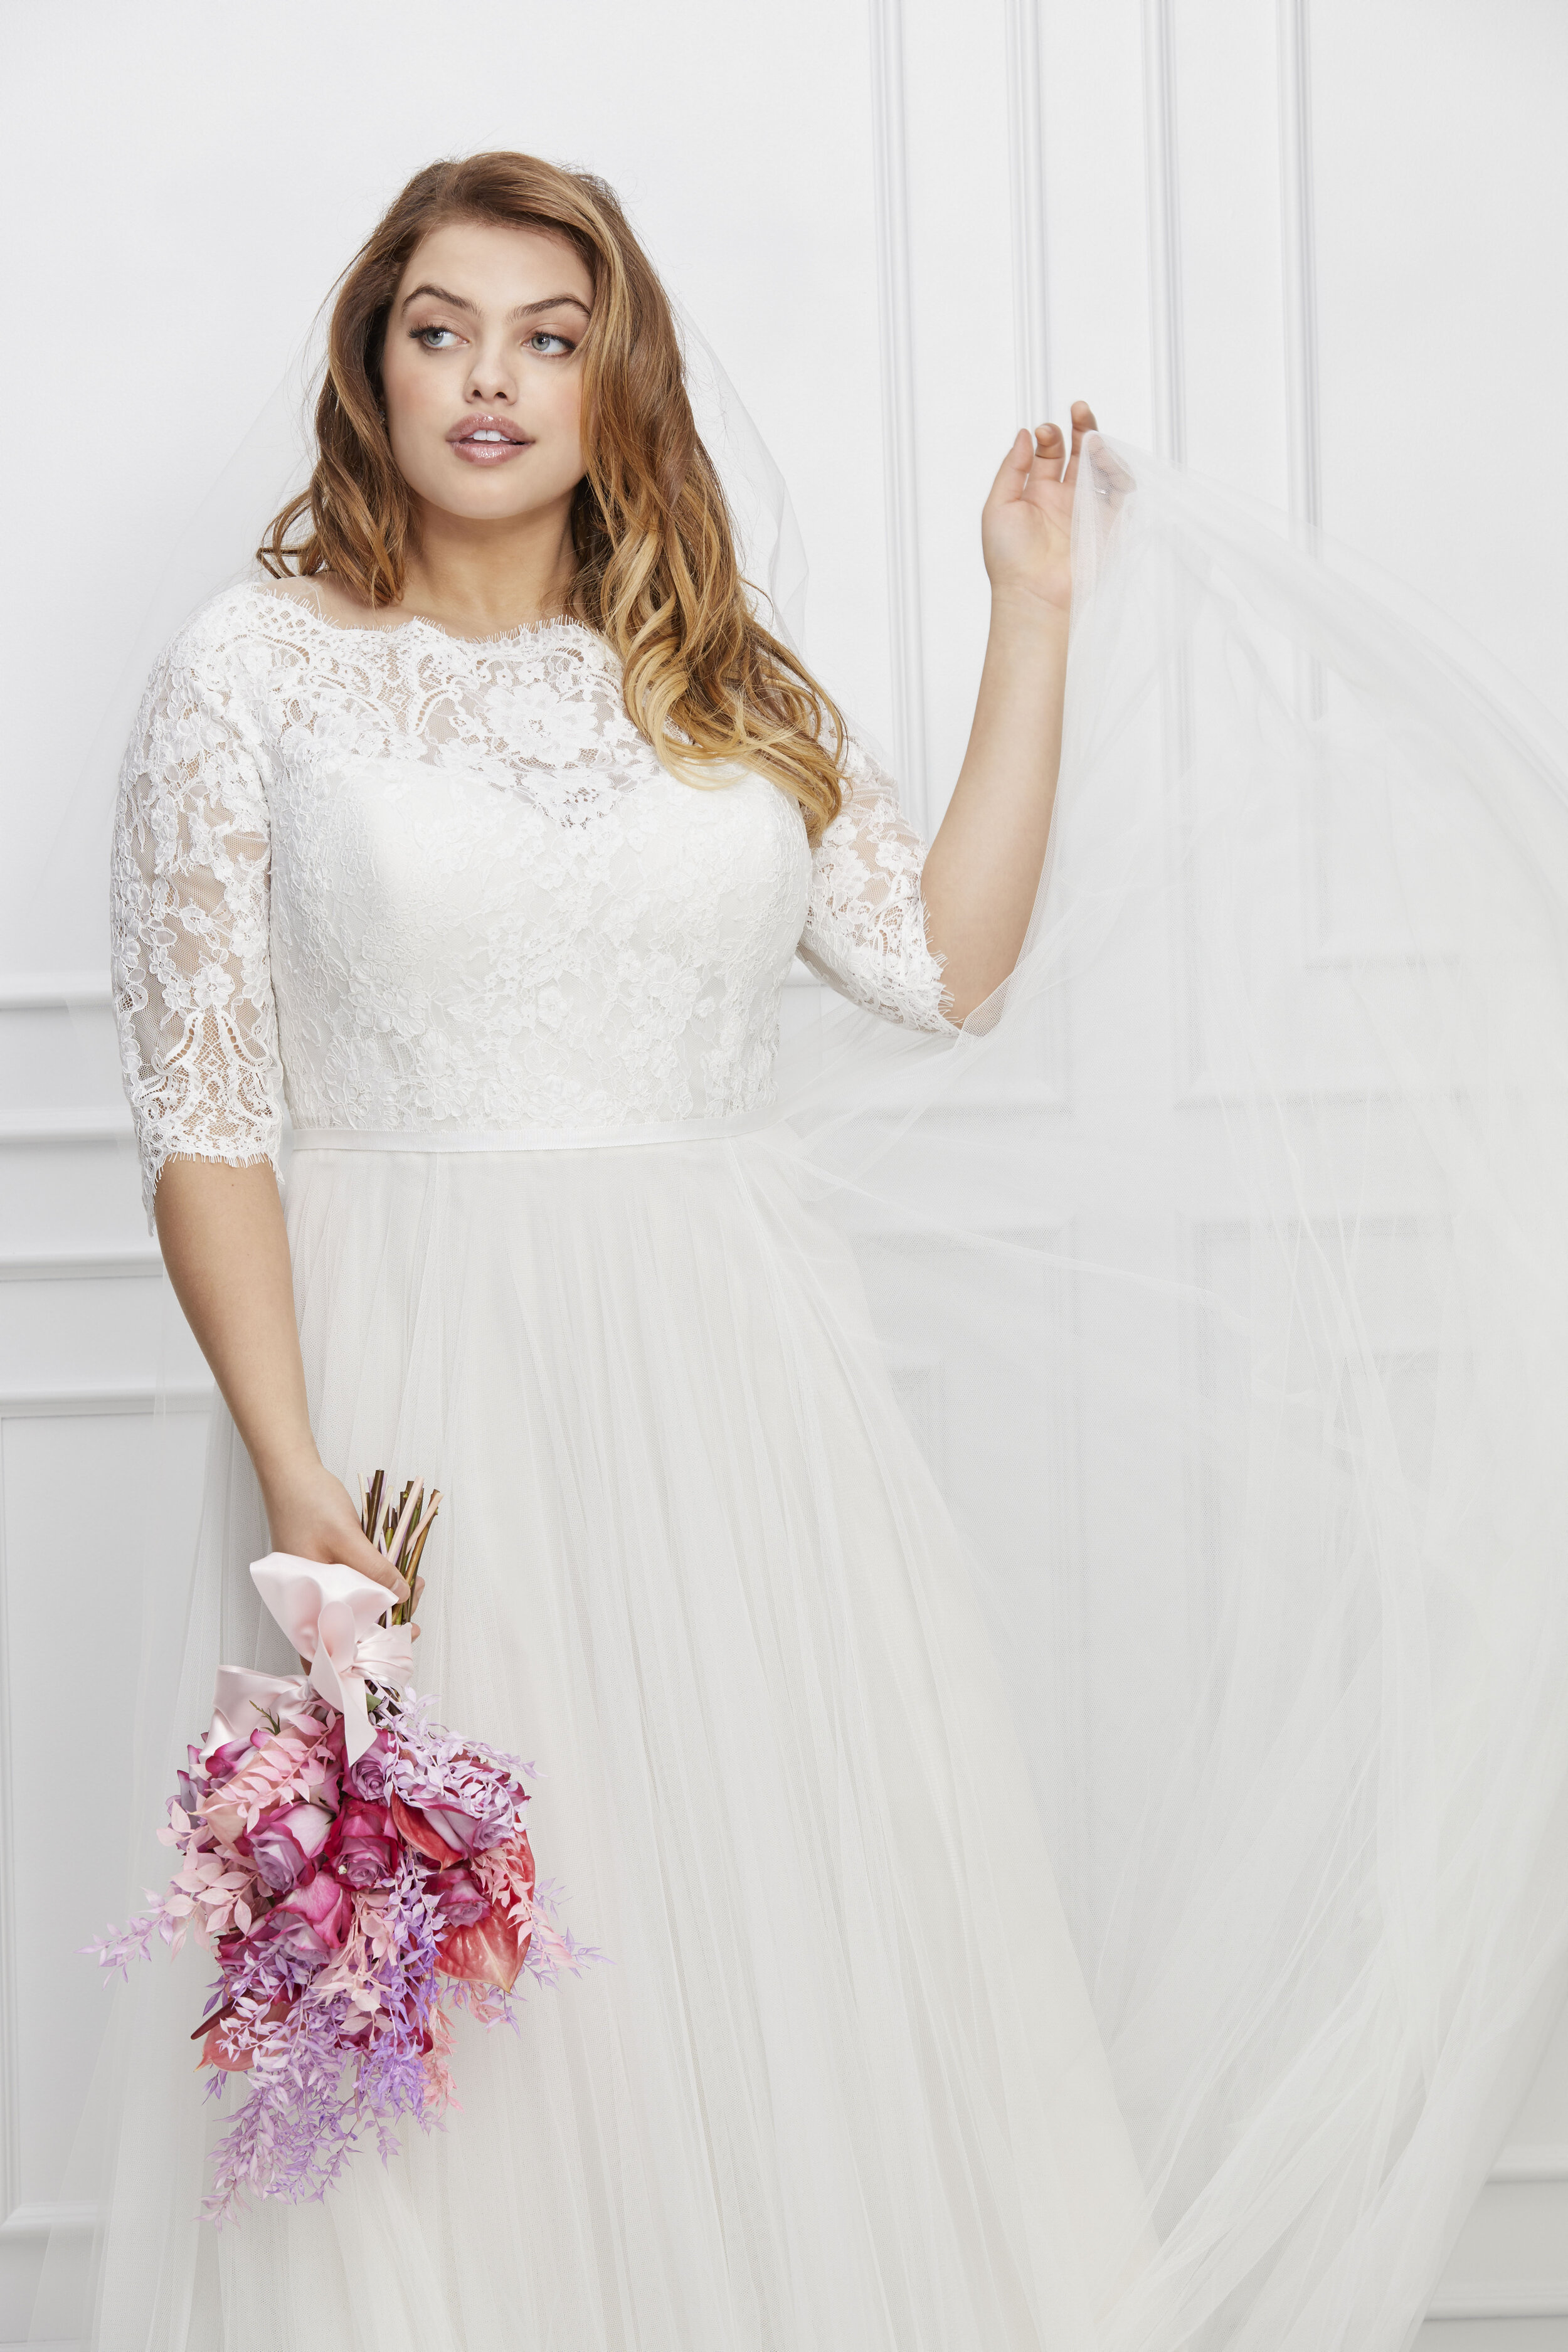 Your wedding dress should be as unique and special as your magical wedding day, now plus size brides can look no further than our designers plus size wedding dress collections. From classic lace wedding gowns to sexy backless bridal gowns, our figure-flattering gown collections are designed for every bride – Exquisite details and curve-hugging silhouettes make our plus-size wedding dresses a dream, no matter your size!